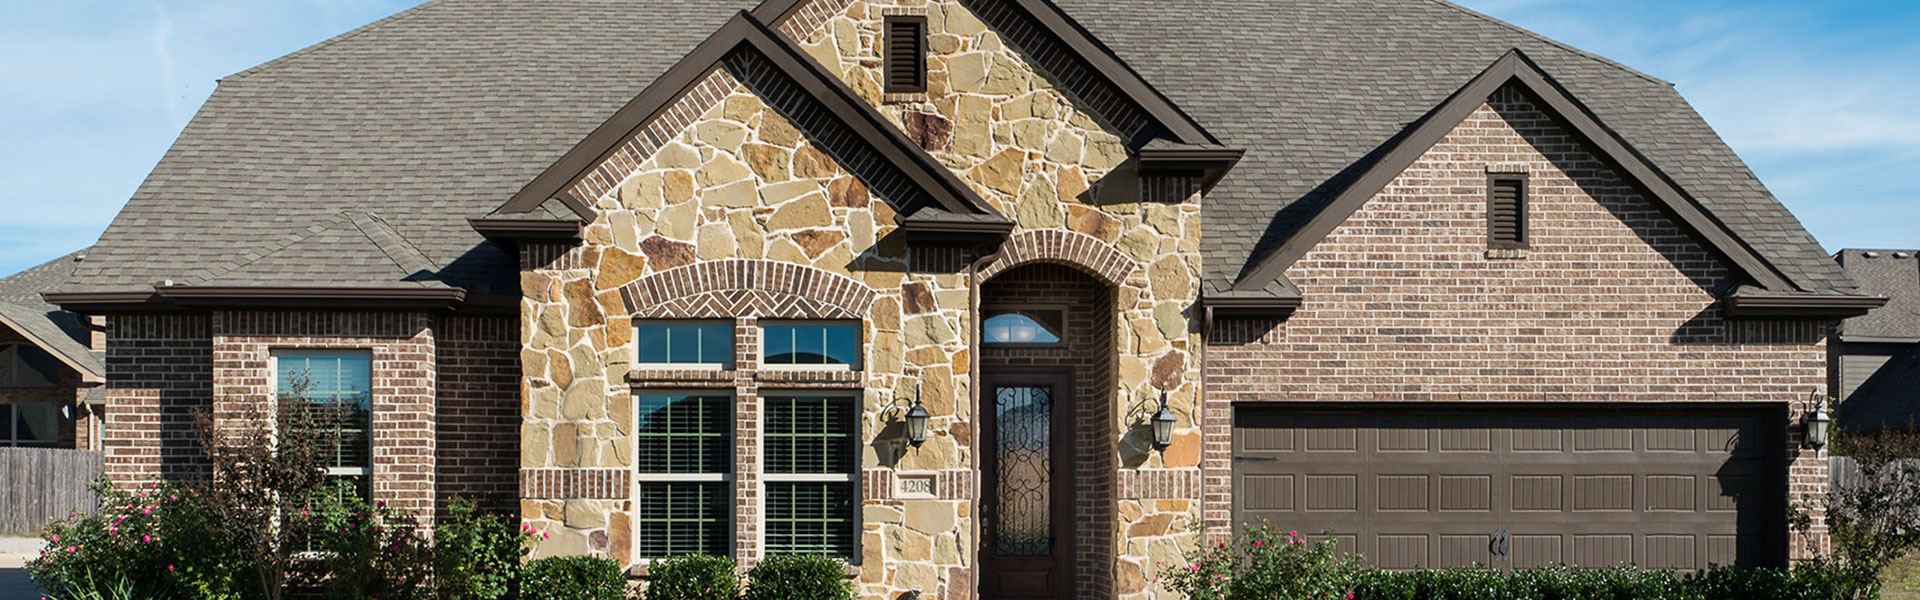 New Homes for Sale in Aledo